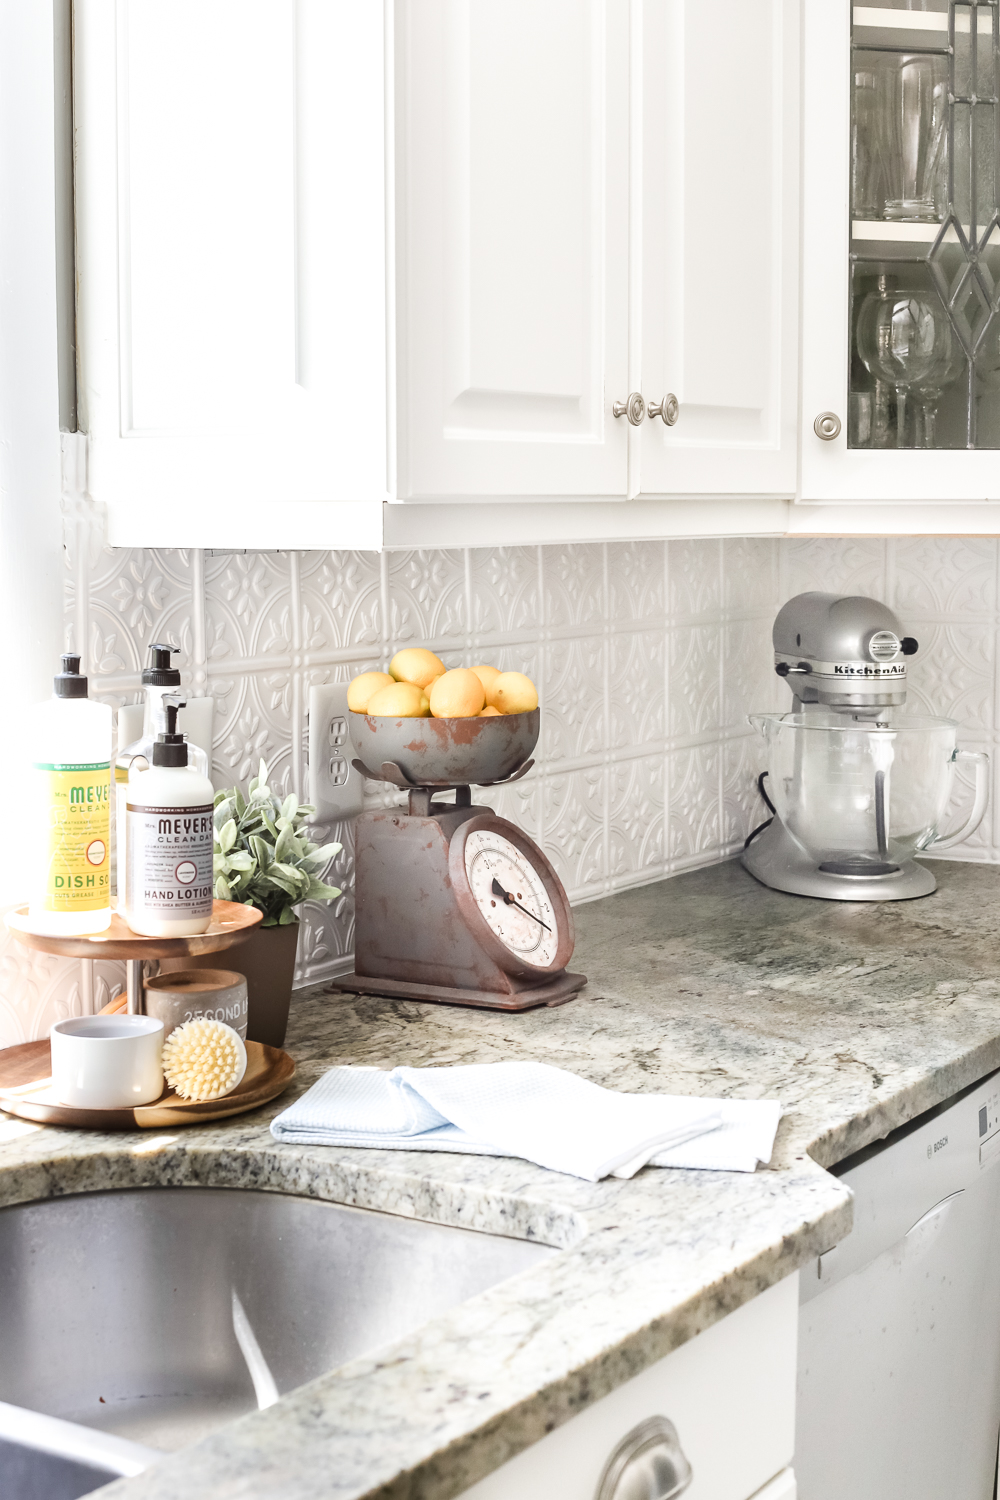 How to Update Your Farmhouse Kitchen on the Cheap - The ... on Farmhouse Tile  id=98283